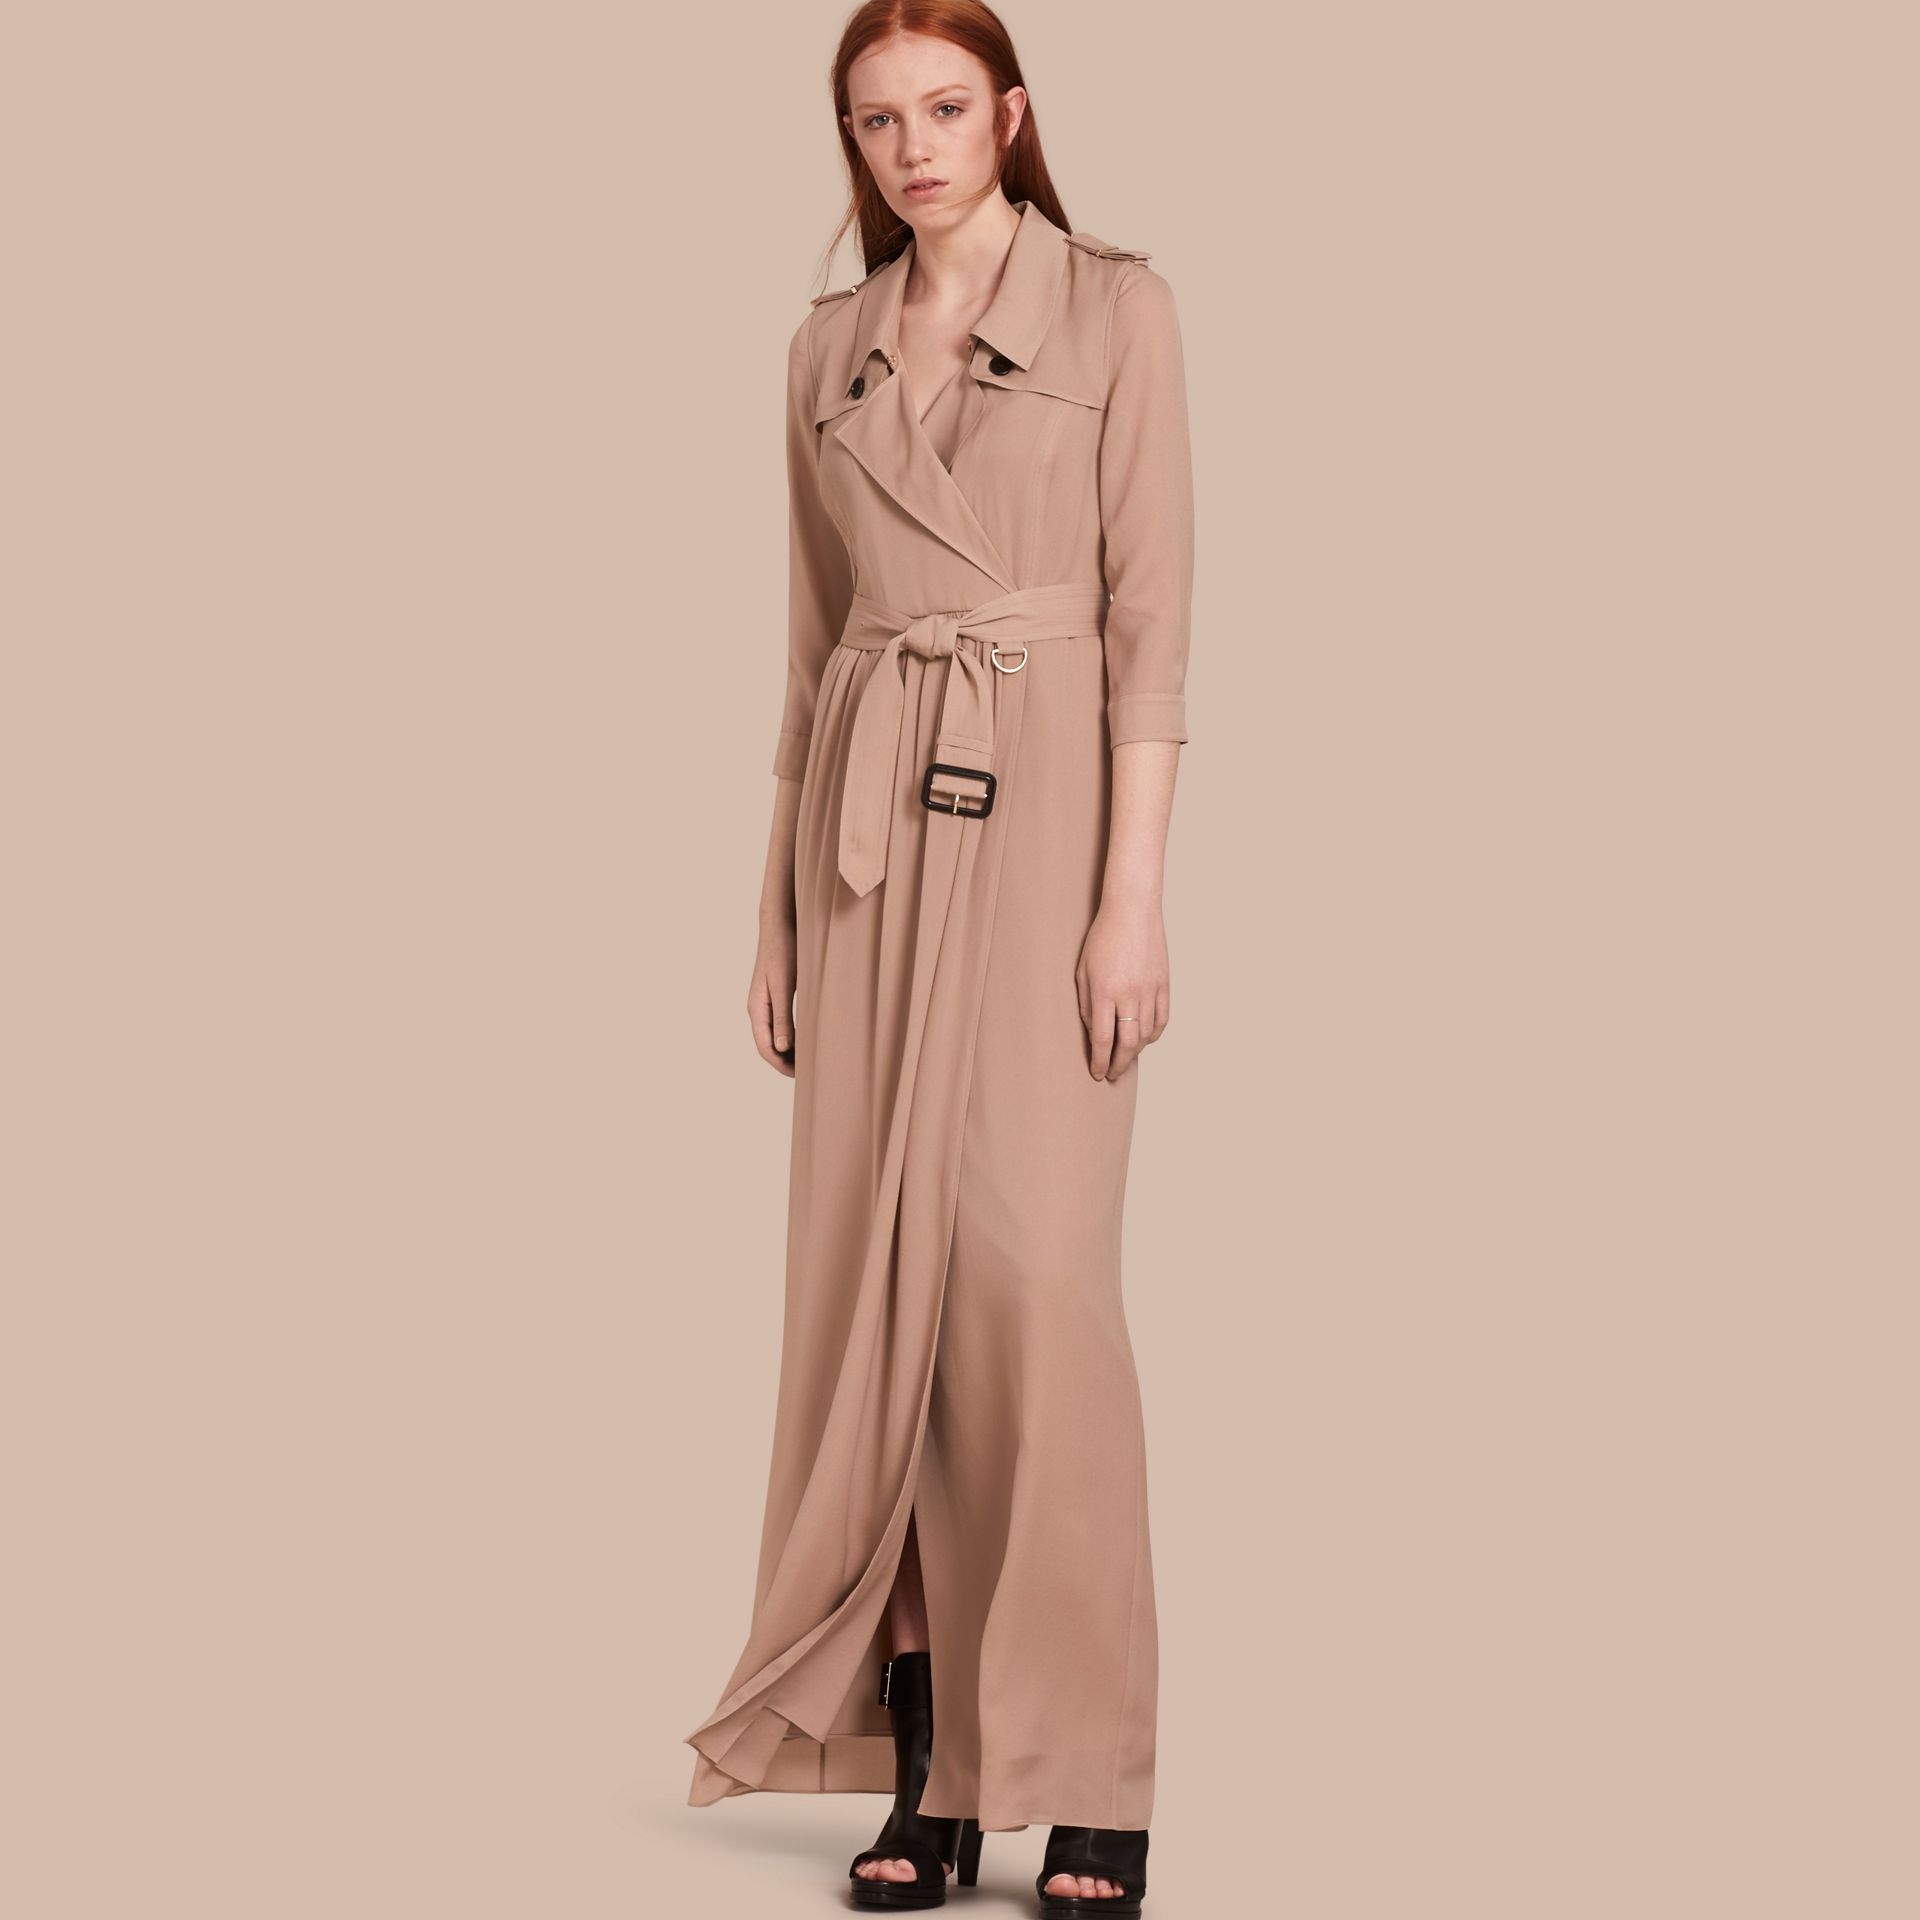 Silk Trench Dress in Nude - Women | Burberry - gallery image 1